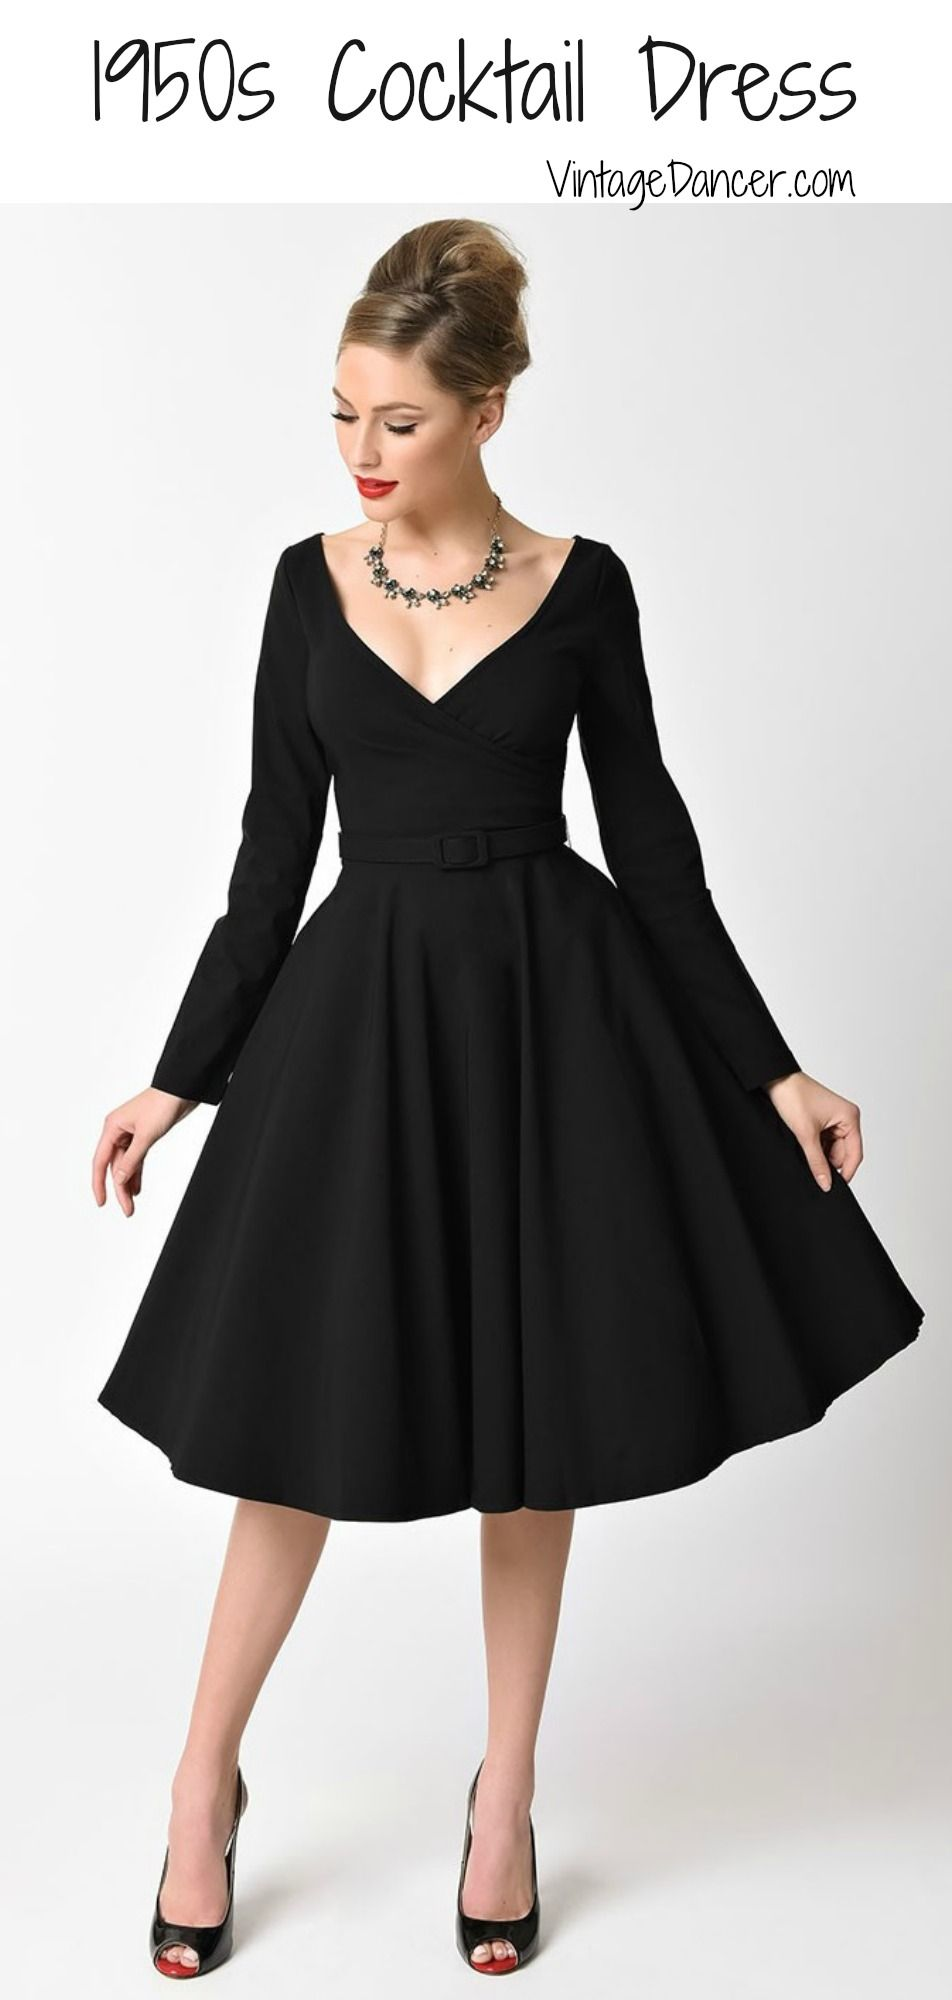 Black 1950s cocktail dresses and party dresses at VintageDancer.com e937ce88e46c